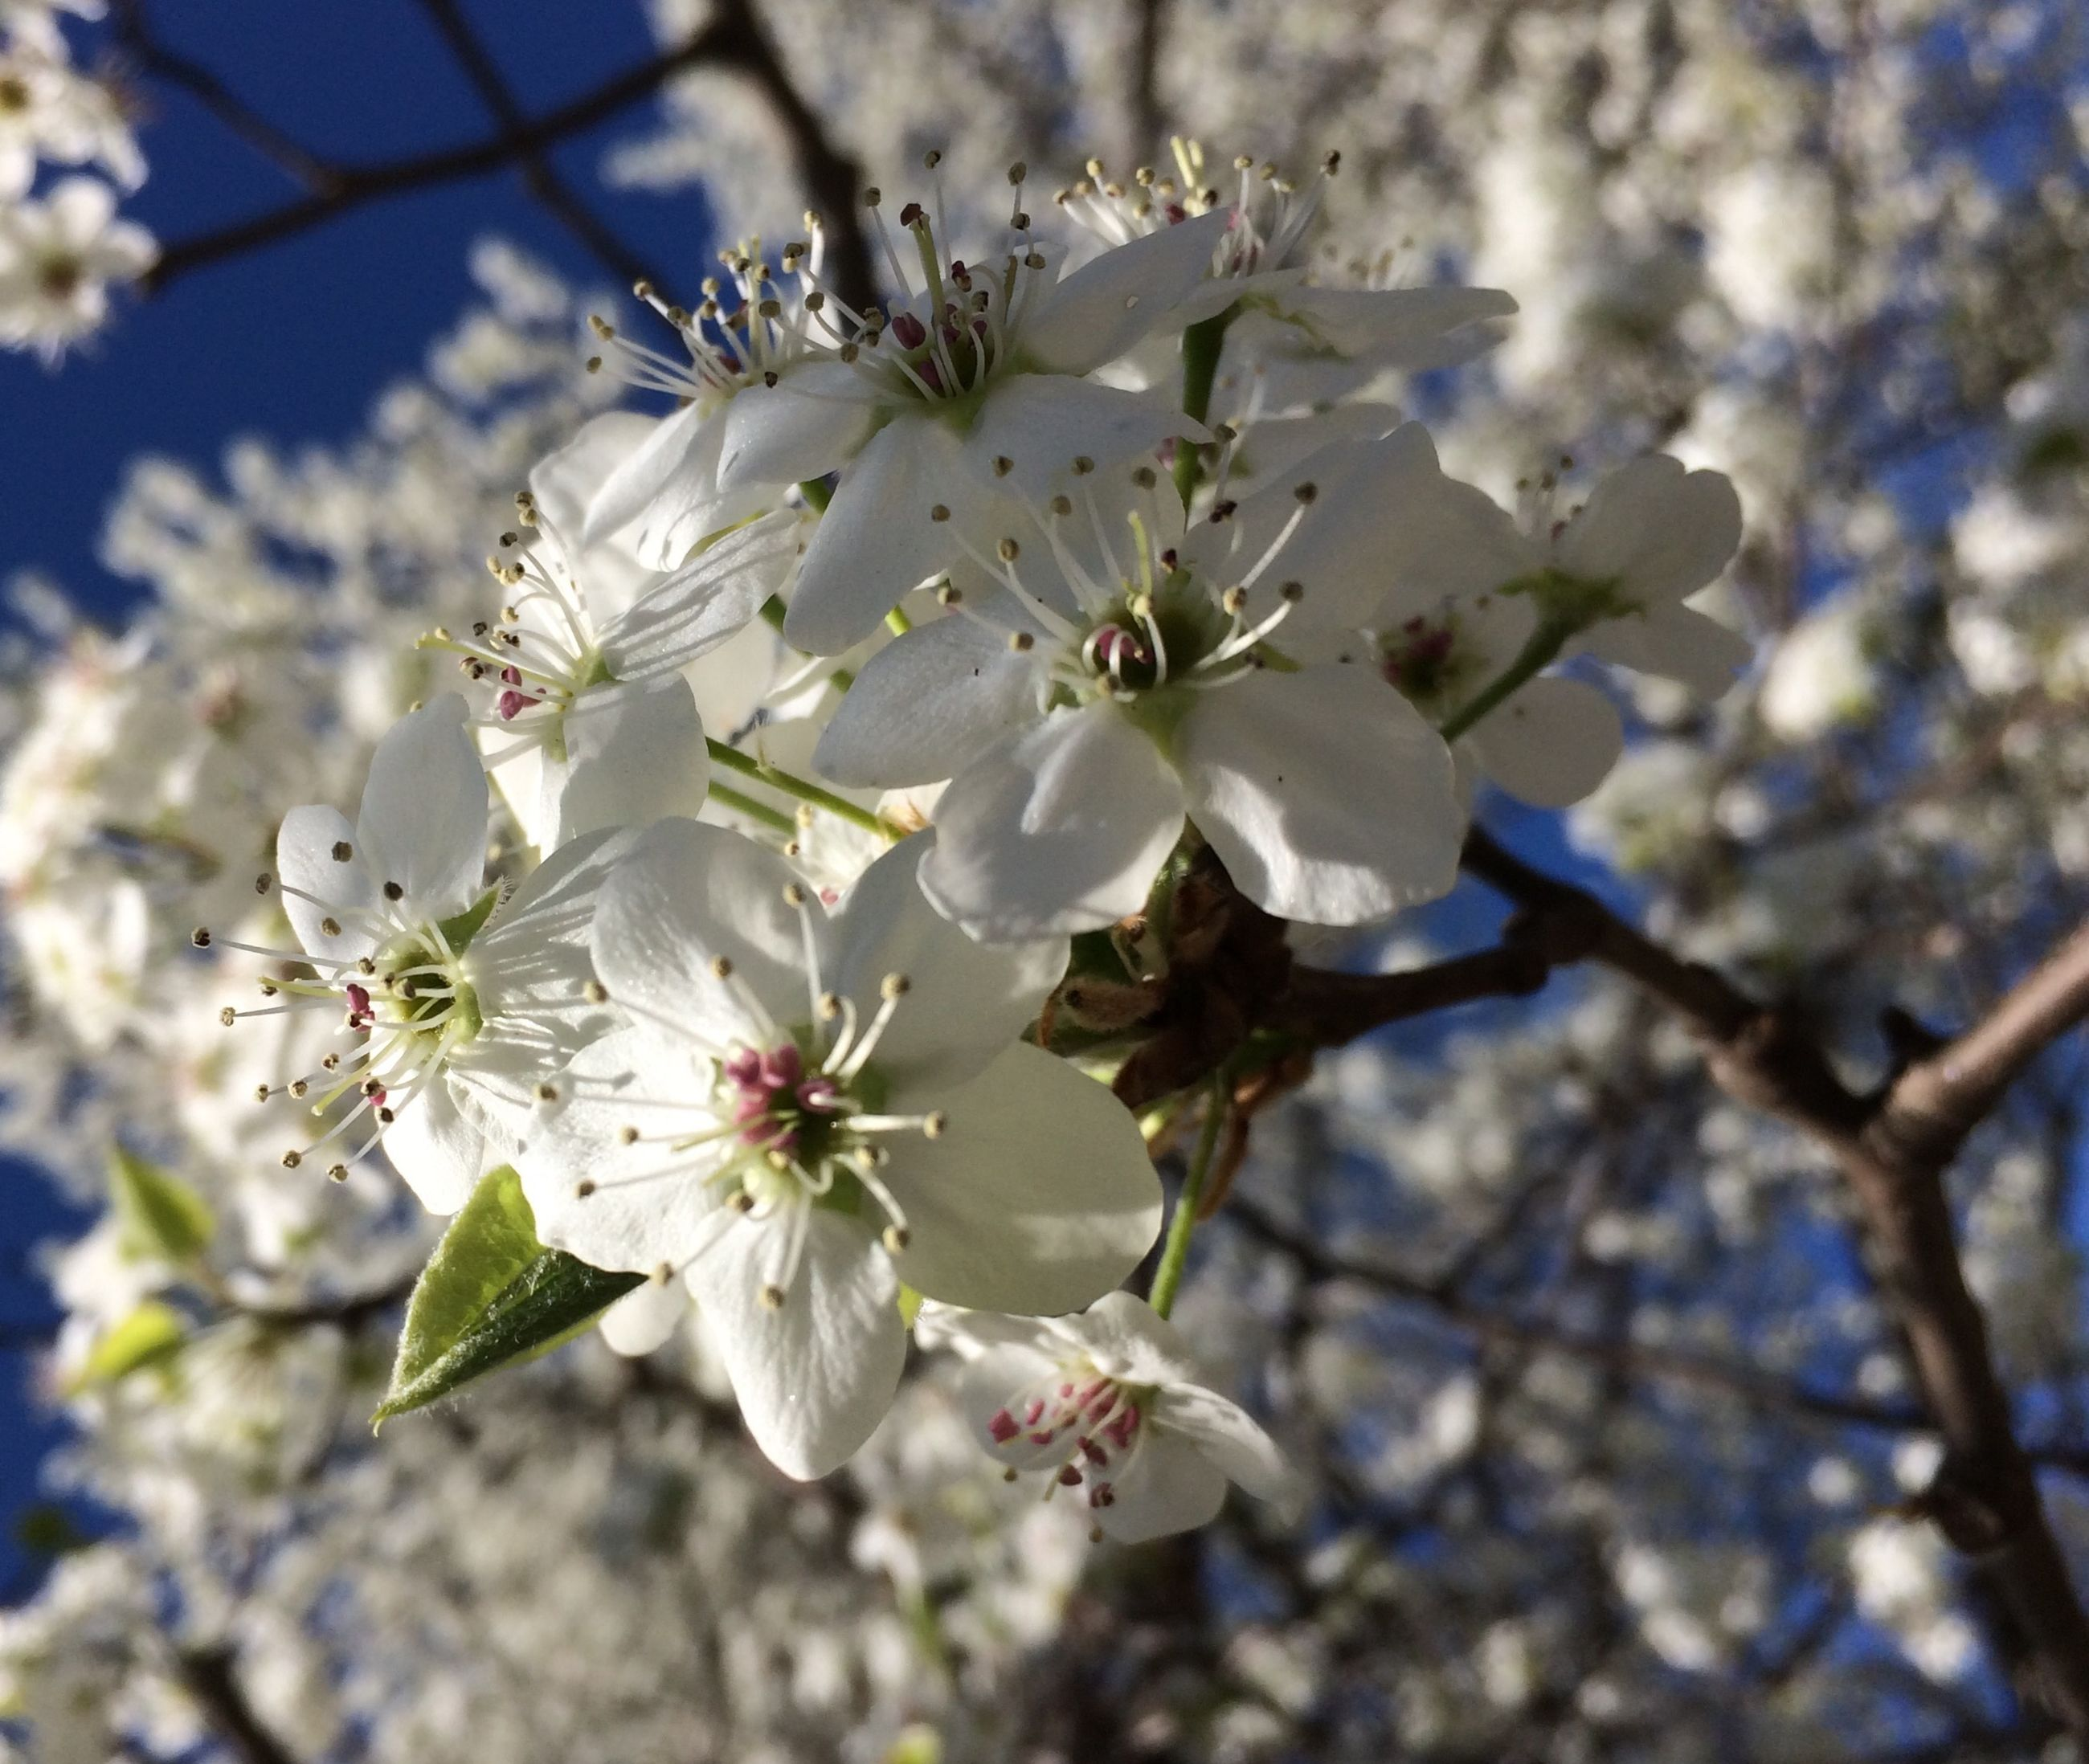 flower, freshness, cherry blossom, tree, branch, growth, fragility, cherry tree, blossom, white color, beauty in nature, nature, fruit tree, focus on foreground, petal, apple blossom, low angle view, apple tree, in bloom, close-up